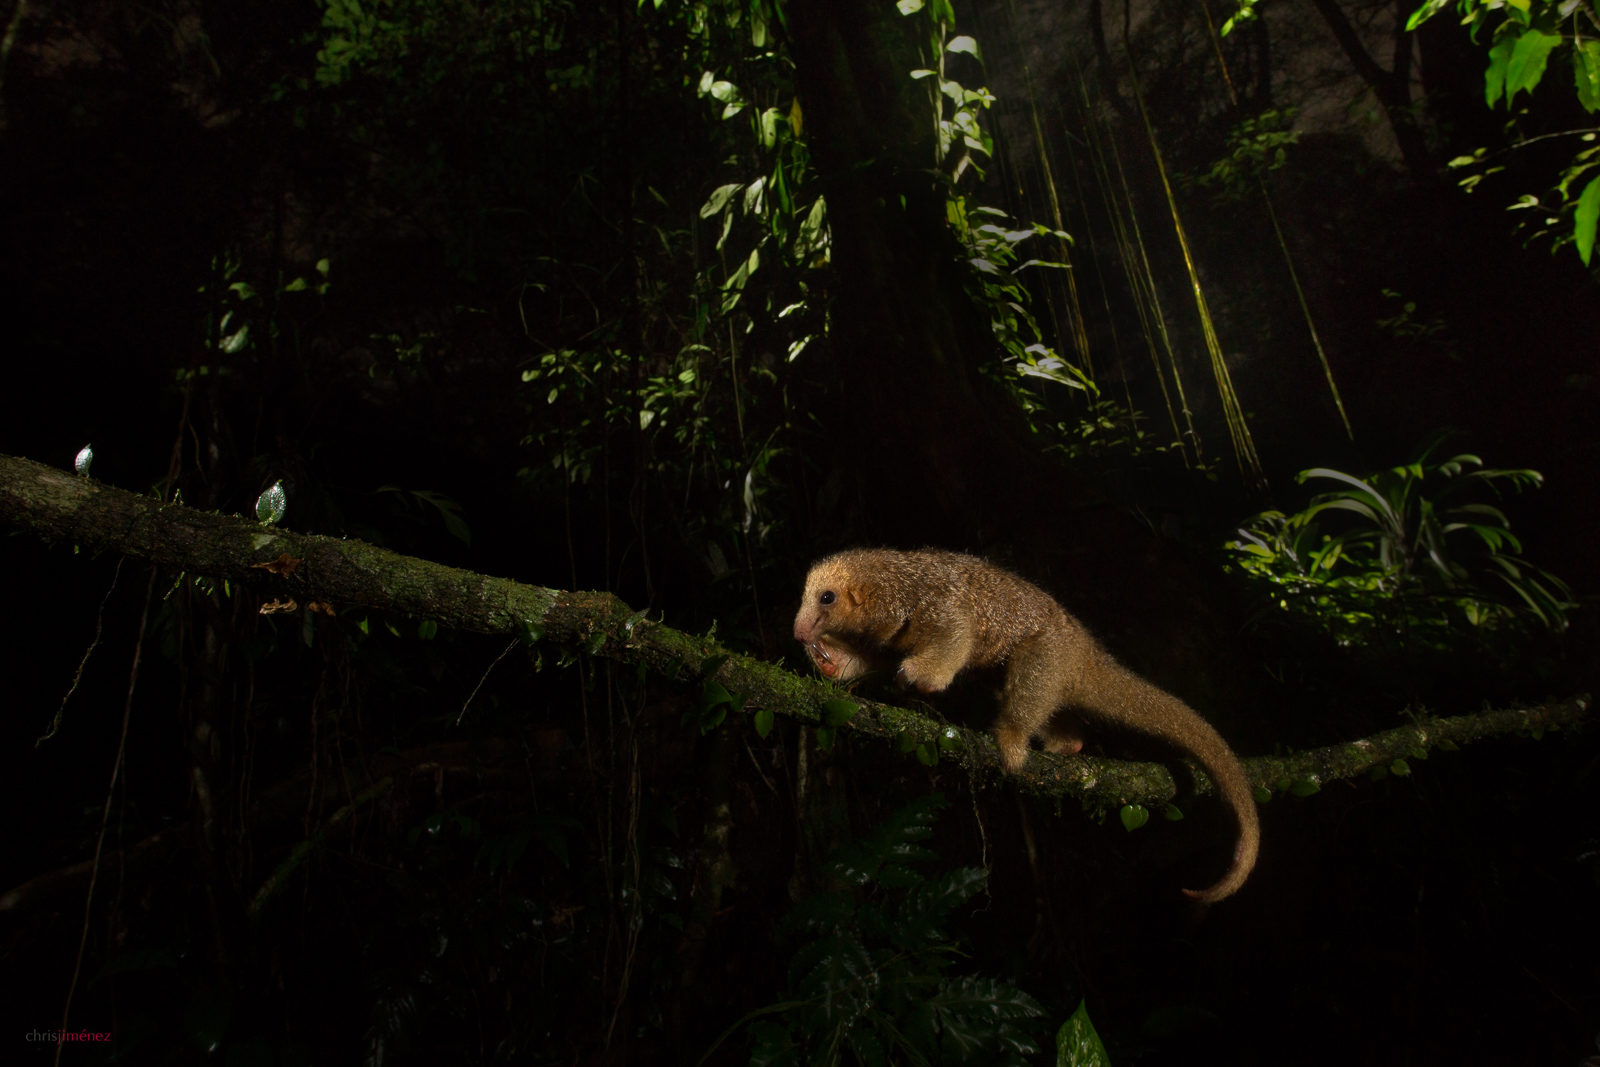 Silky anteater(Cyclopes didactylus) crossing a vine at night at the low lands of Costa Rica, Guapiles, Cope Wildlife